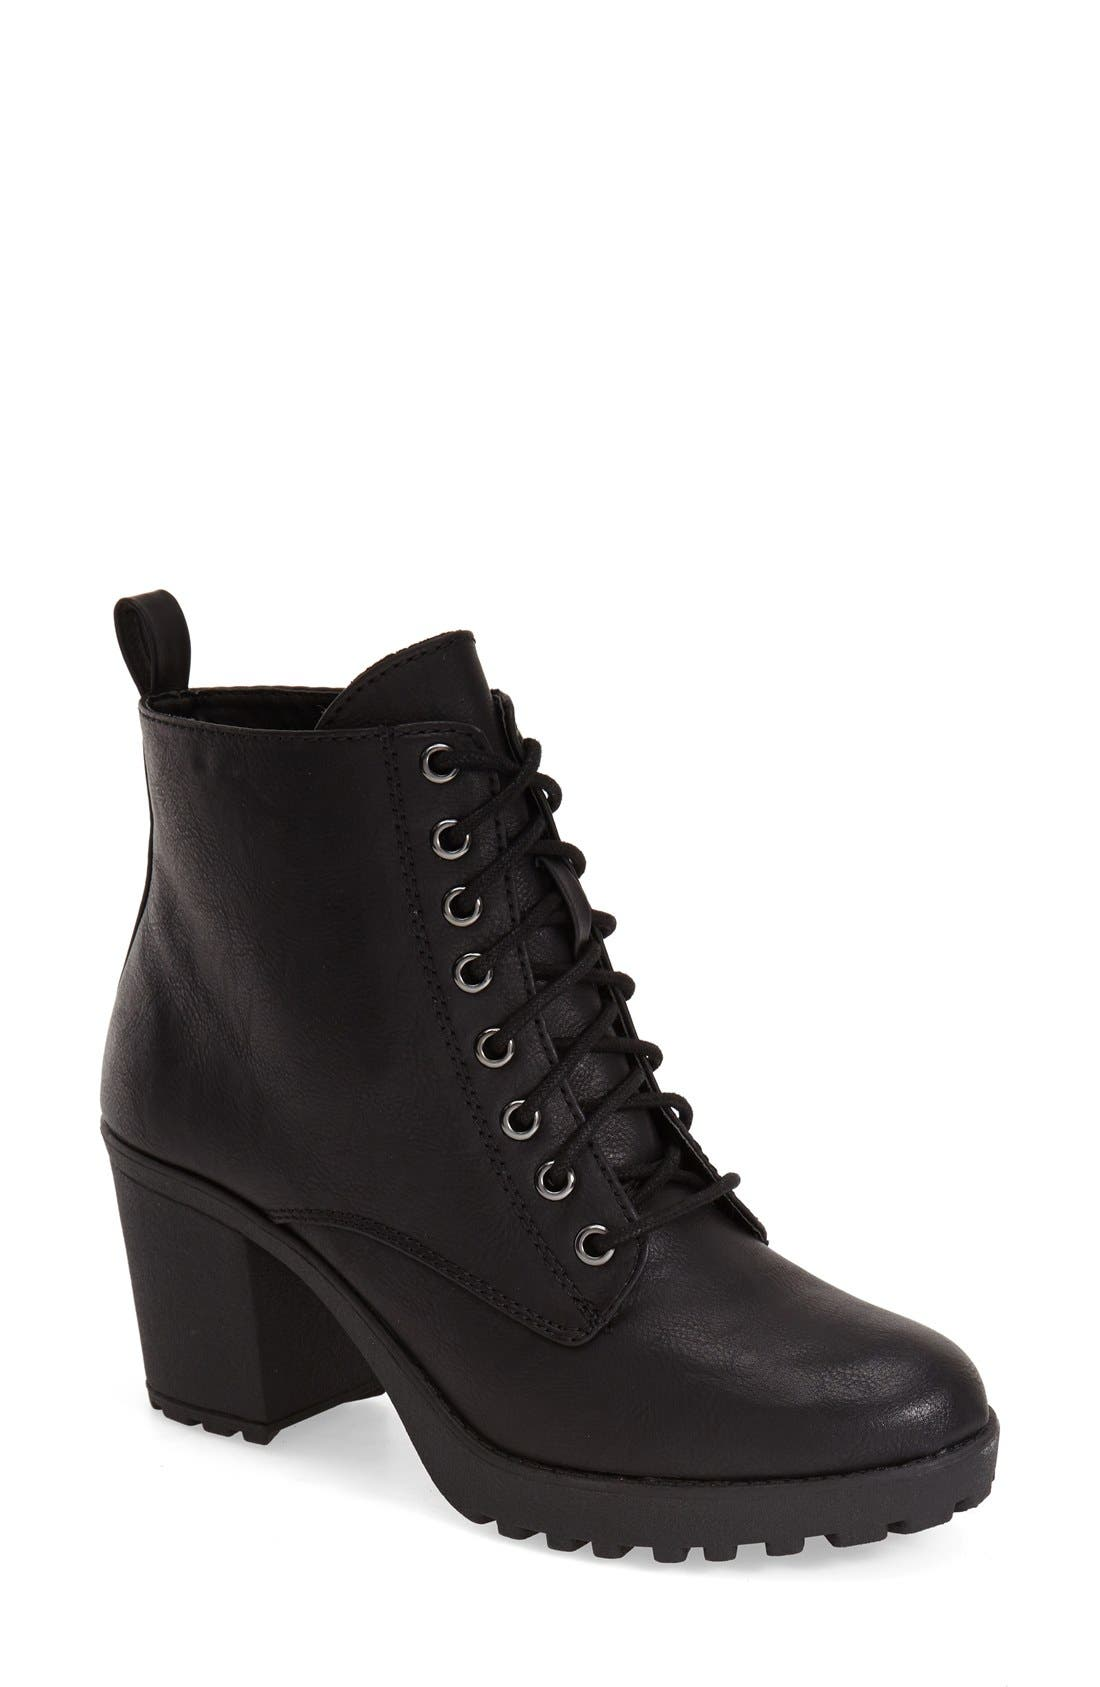 Alternate Image 1 Selected - MIA 'Kat' Lace-Up Lug Bootie (Women)